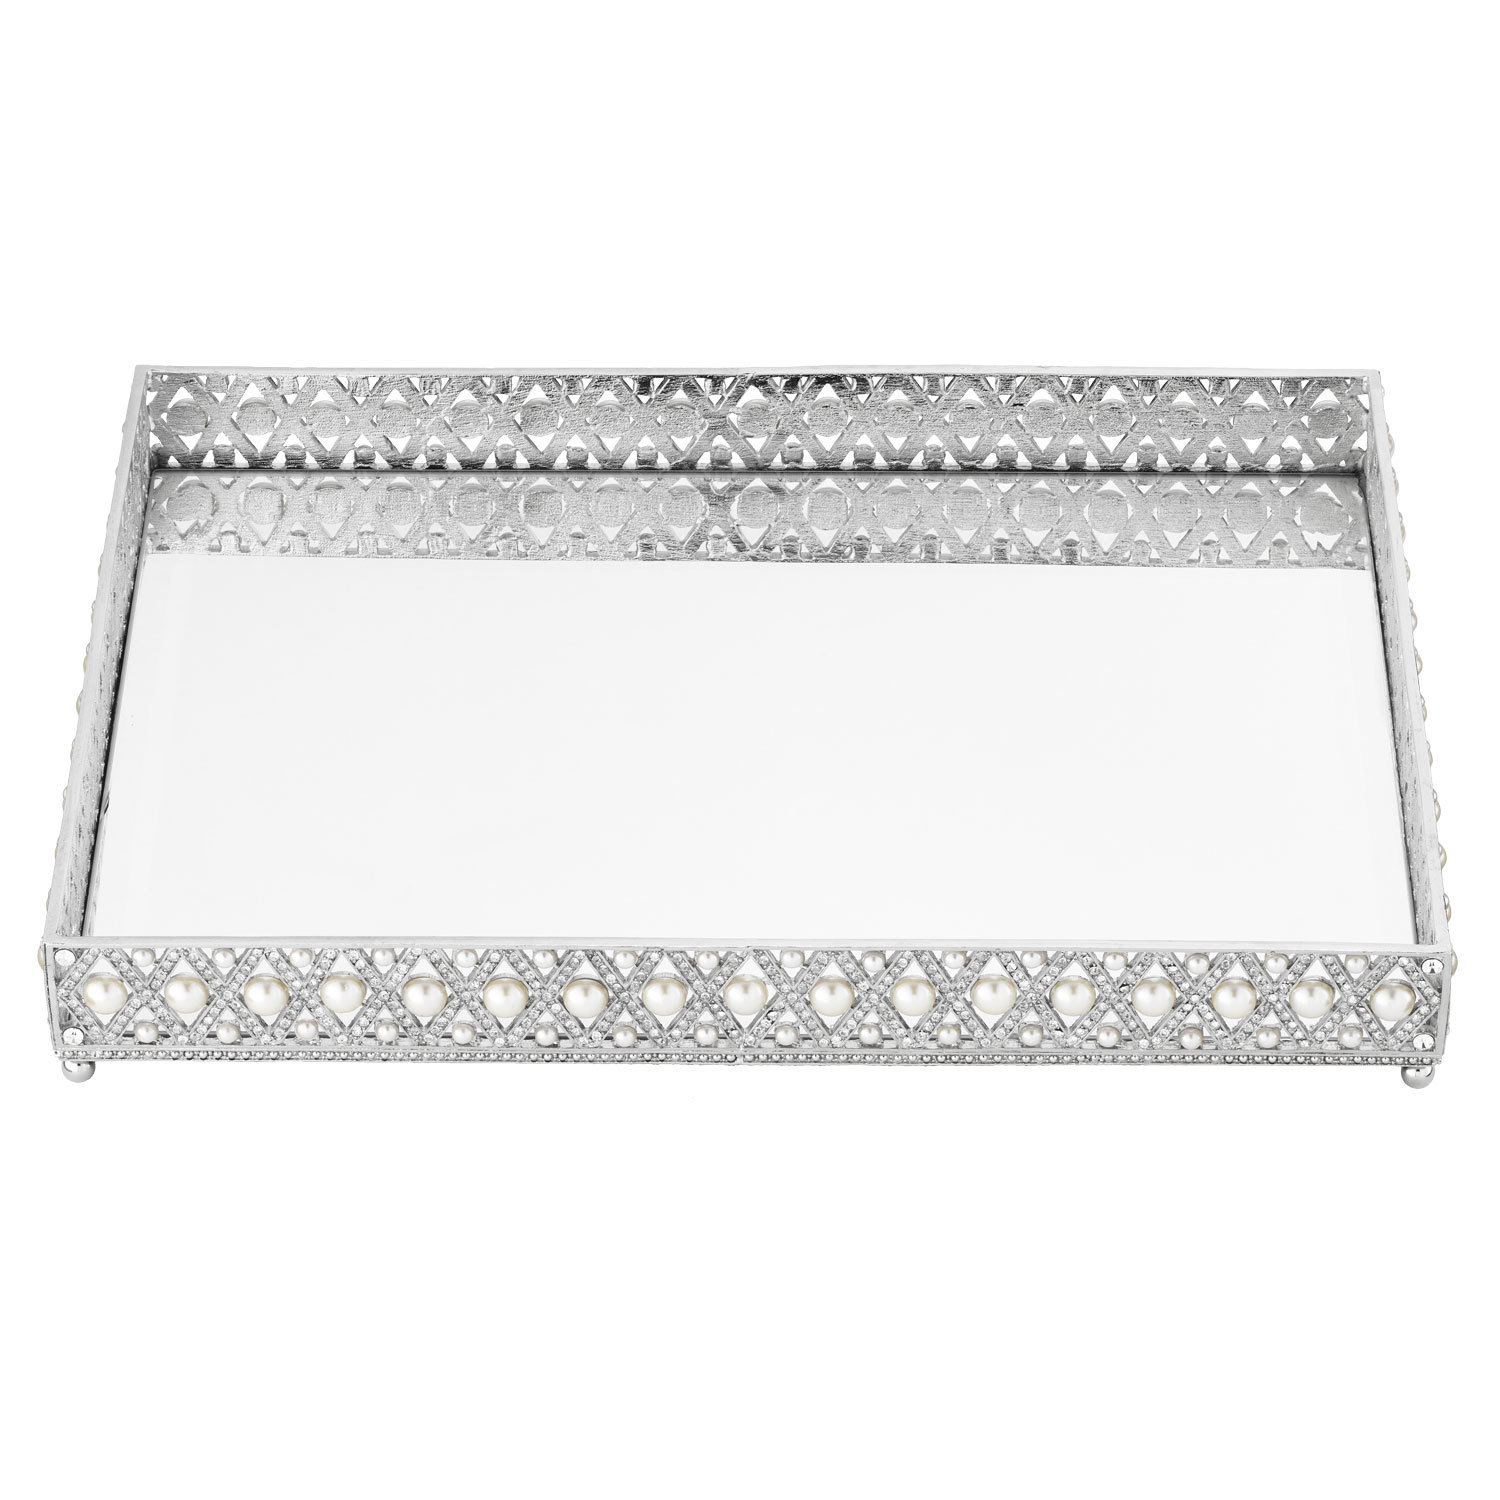 Olivia Riegel Large Silver Tray